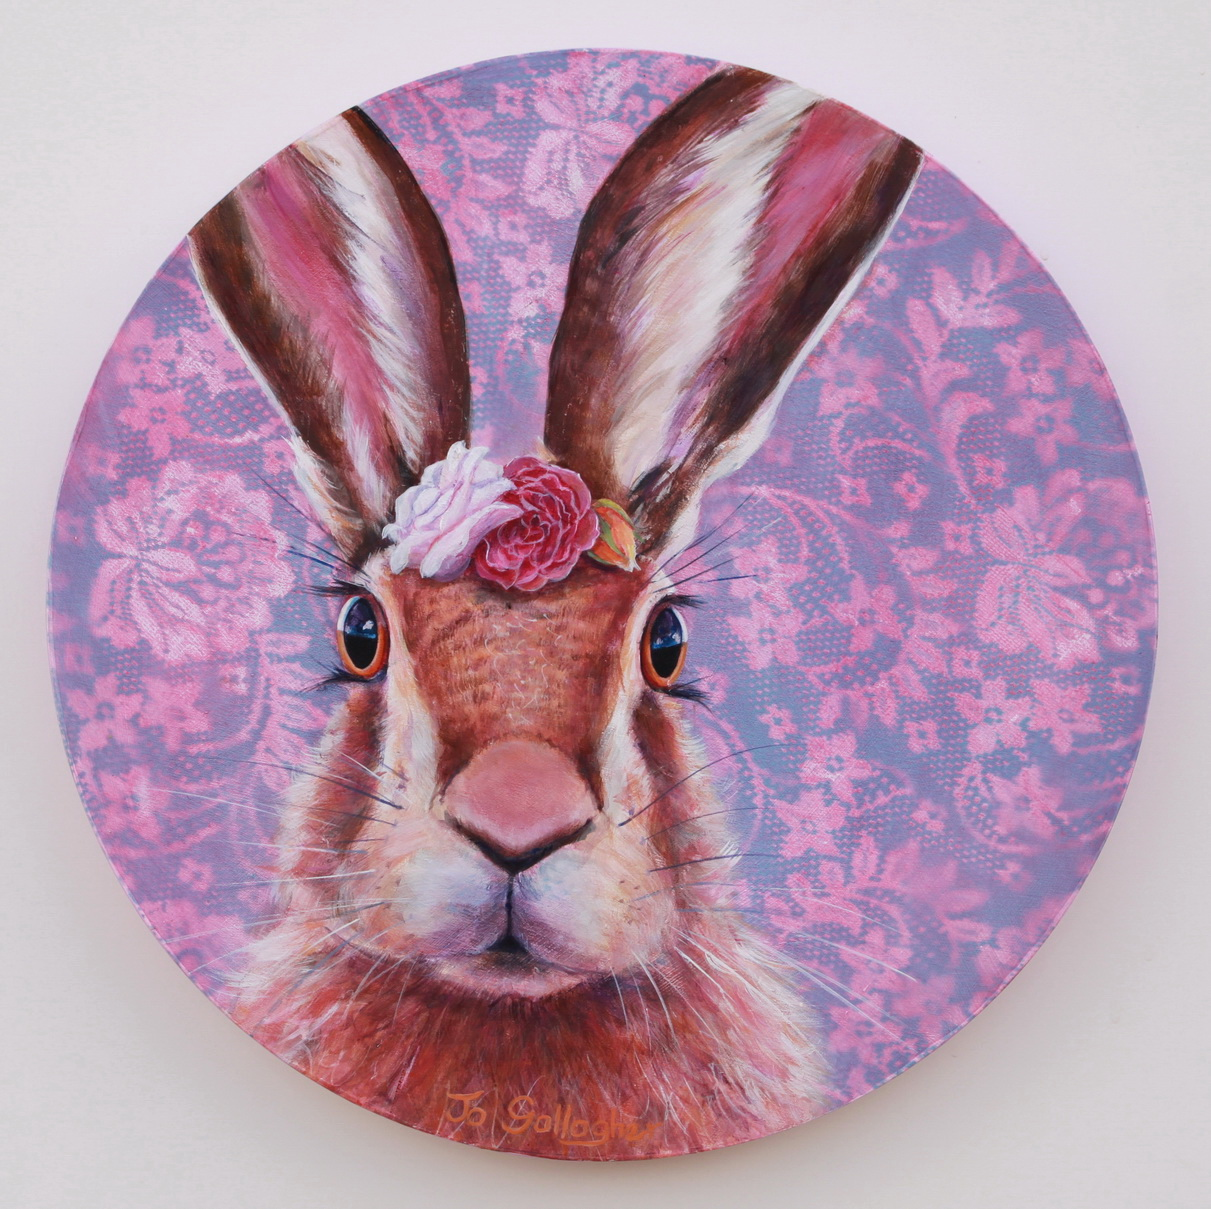 Flowers in my Hare